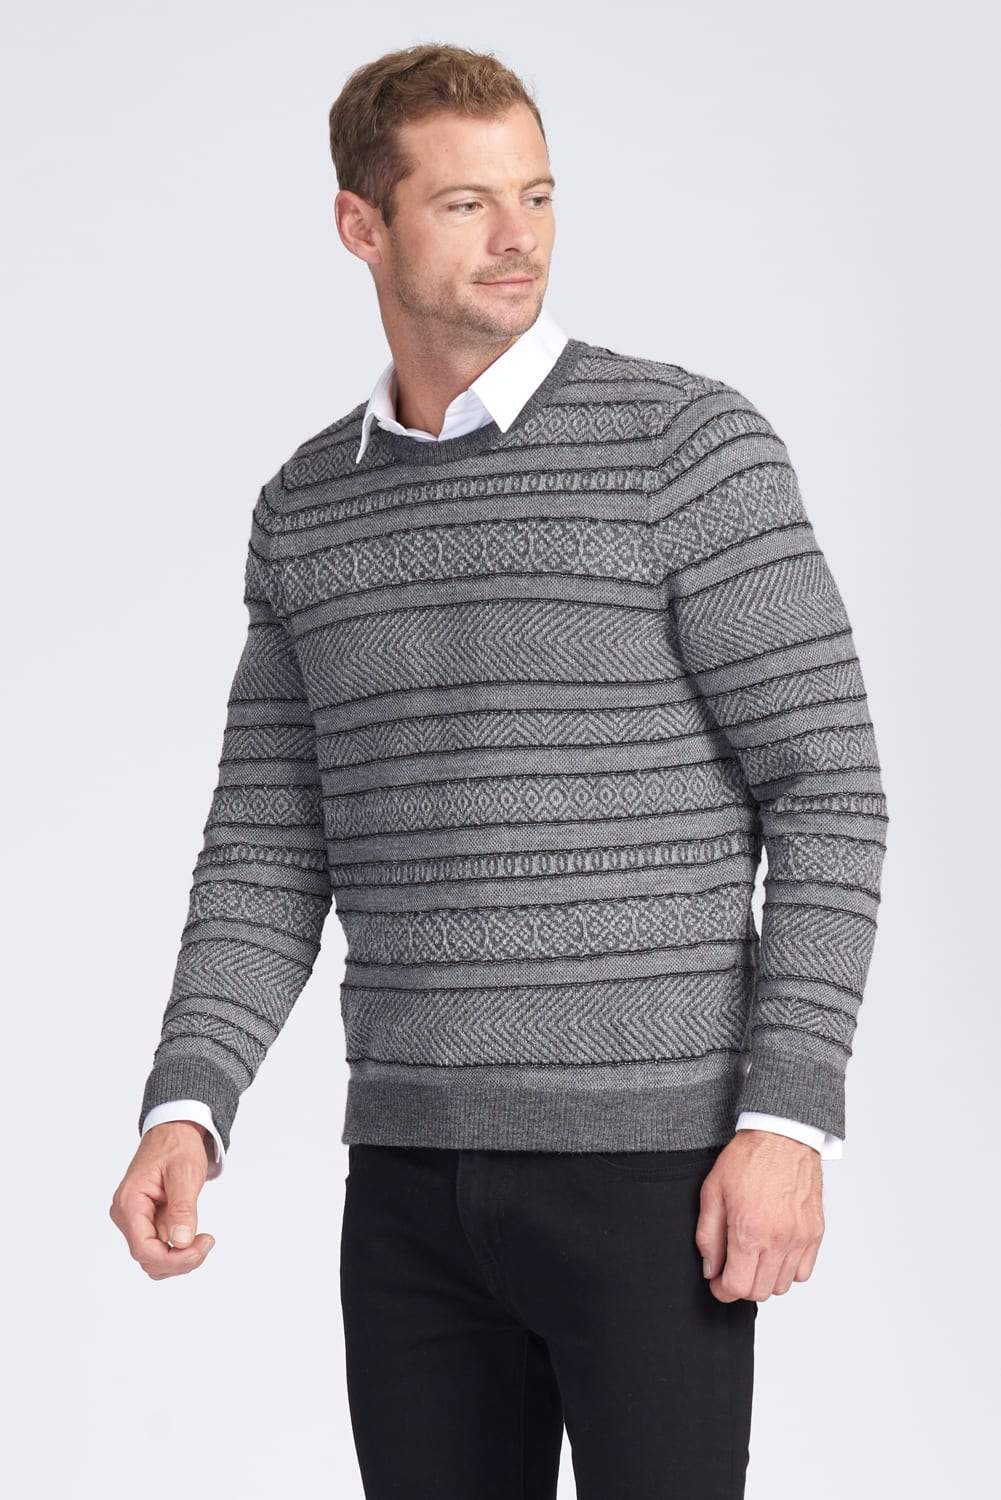 Mens Long Sleeve Crew Neck Jumper. Jacquard pattern. 100% Baby Alpaca fibre.